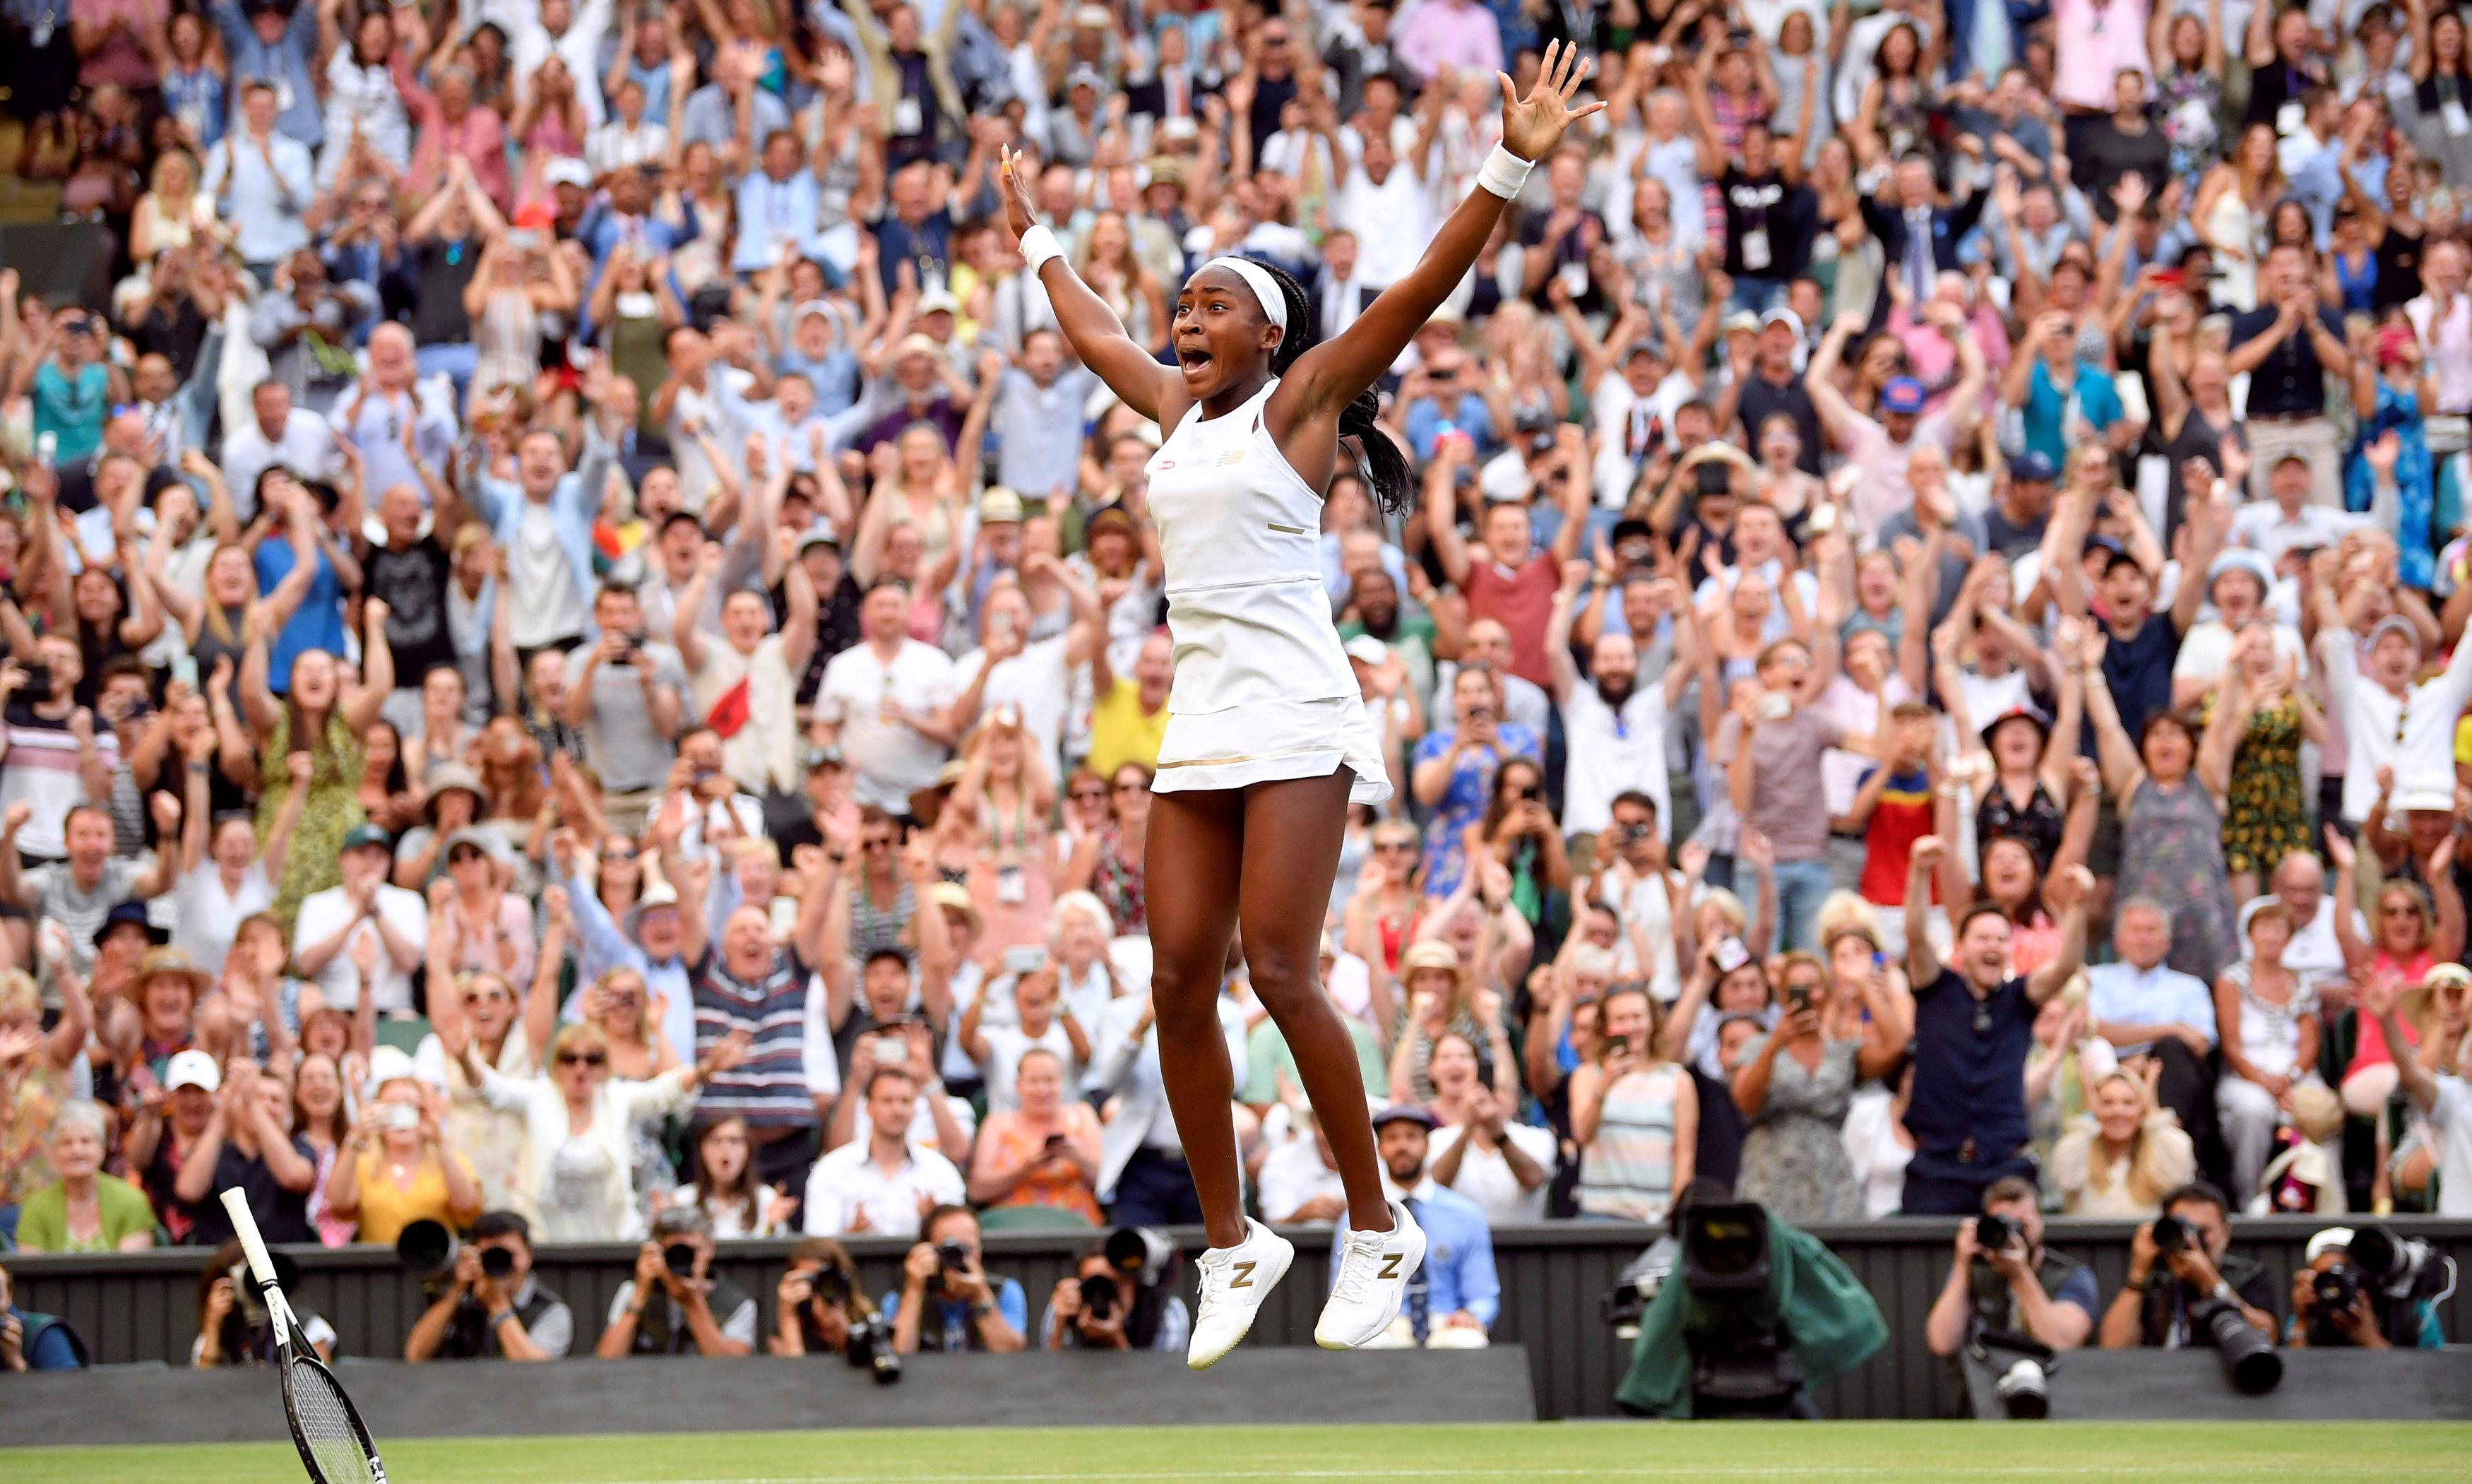 Coco Gauff keeps Wimbledon dream alive with thrilling comeback win